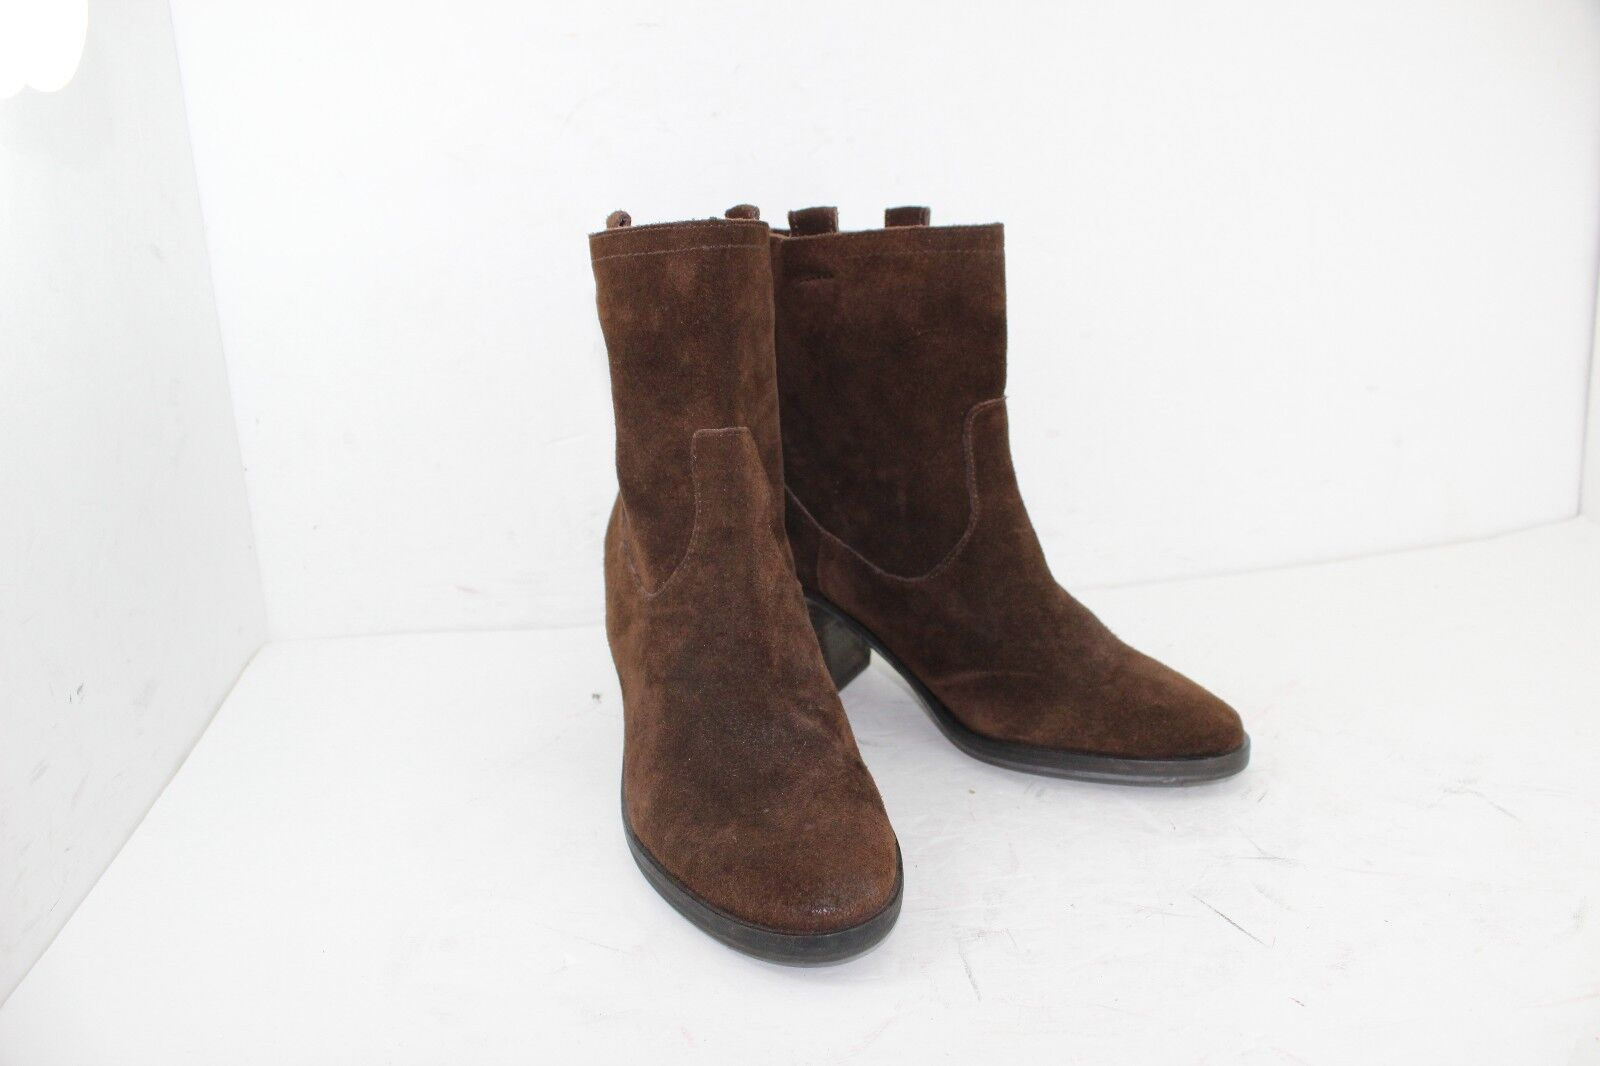 SAM EDELMAN BOOTS LEATHER SUEDE SIZE 7.5 M BROWNS NEW